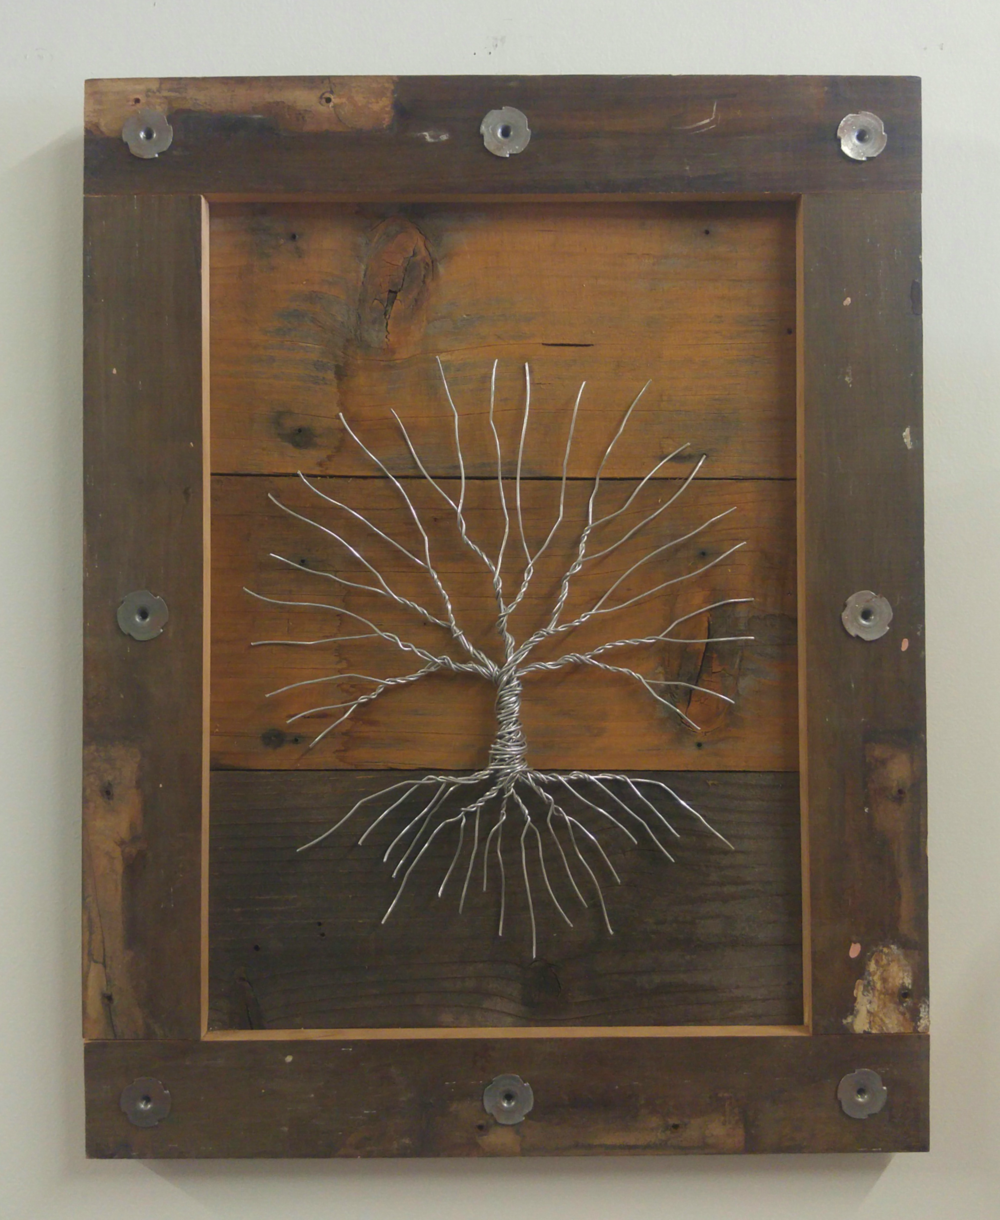 Tree 22   27 X 21 • barn wood, wire   $425